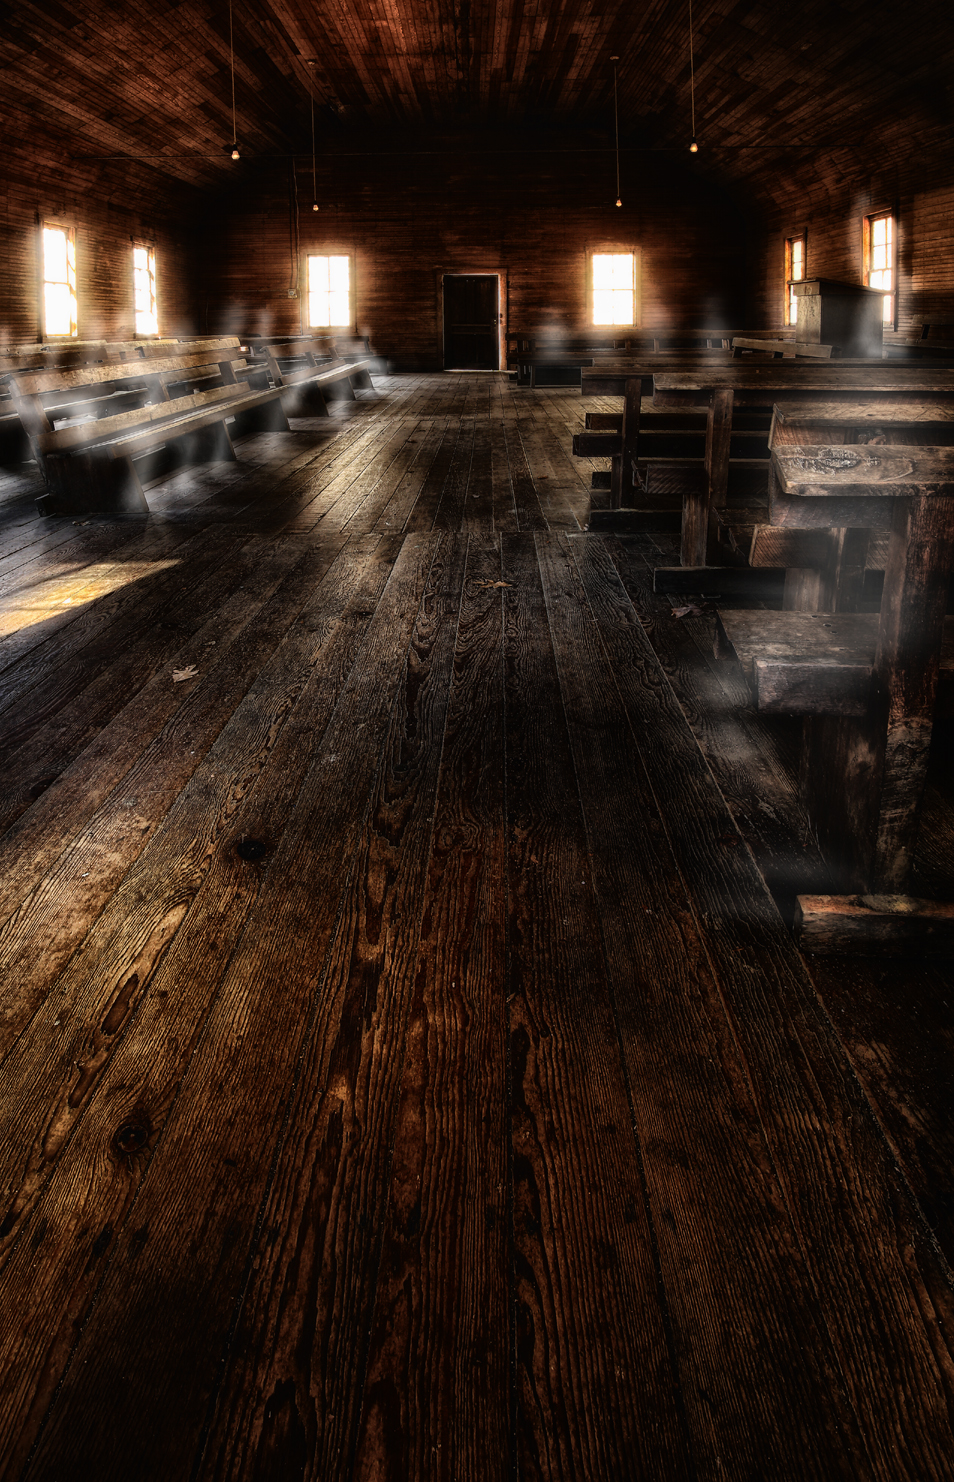 dark interior of old country church - eerie light